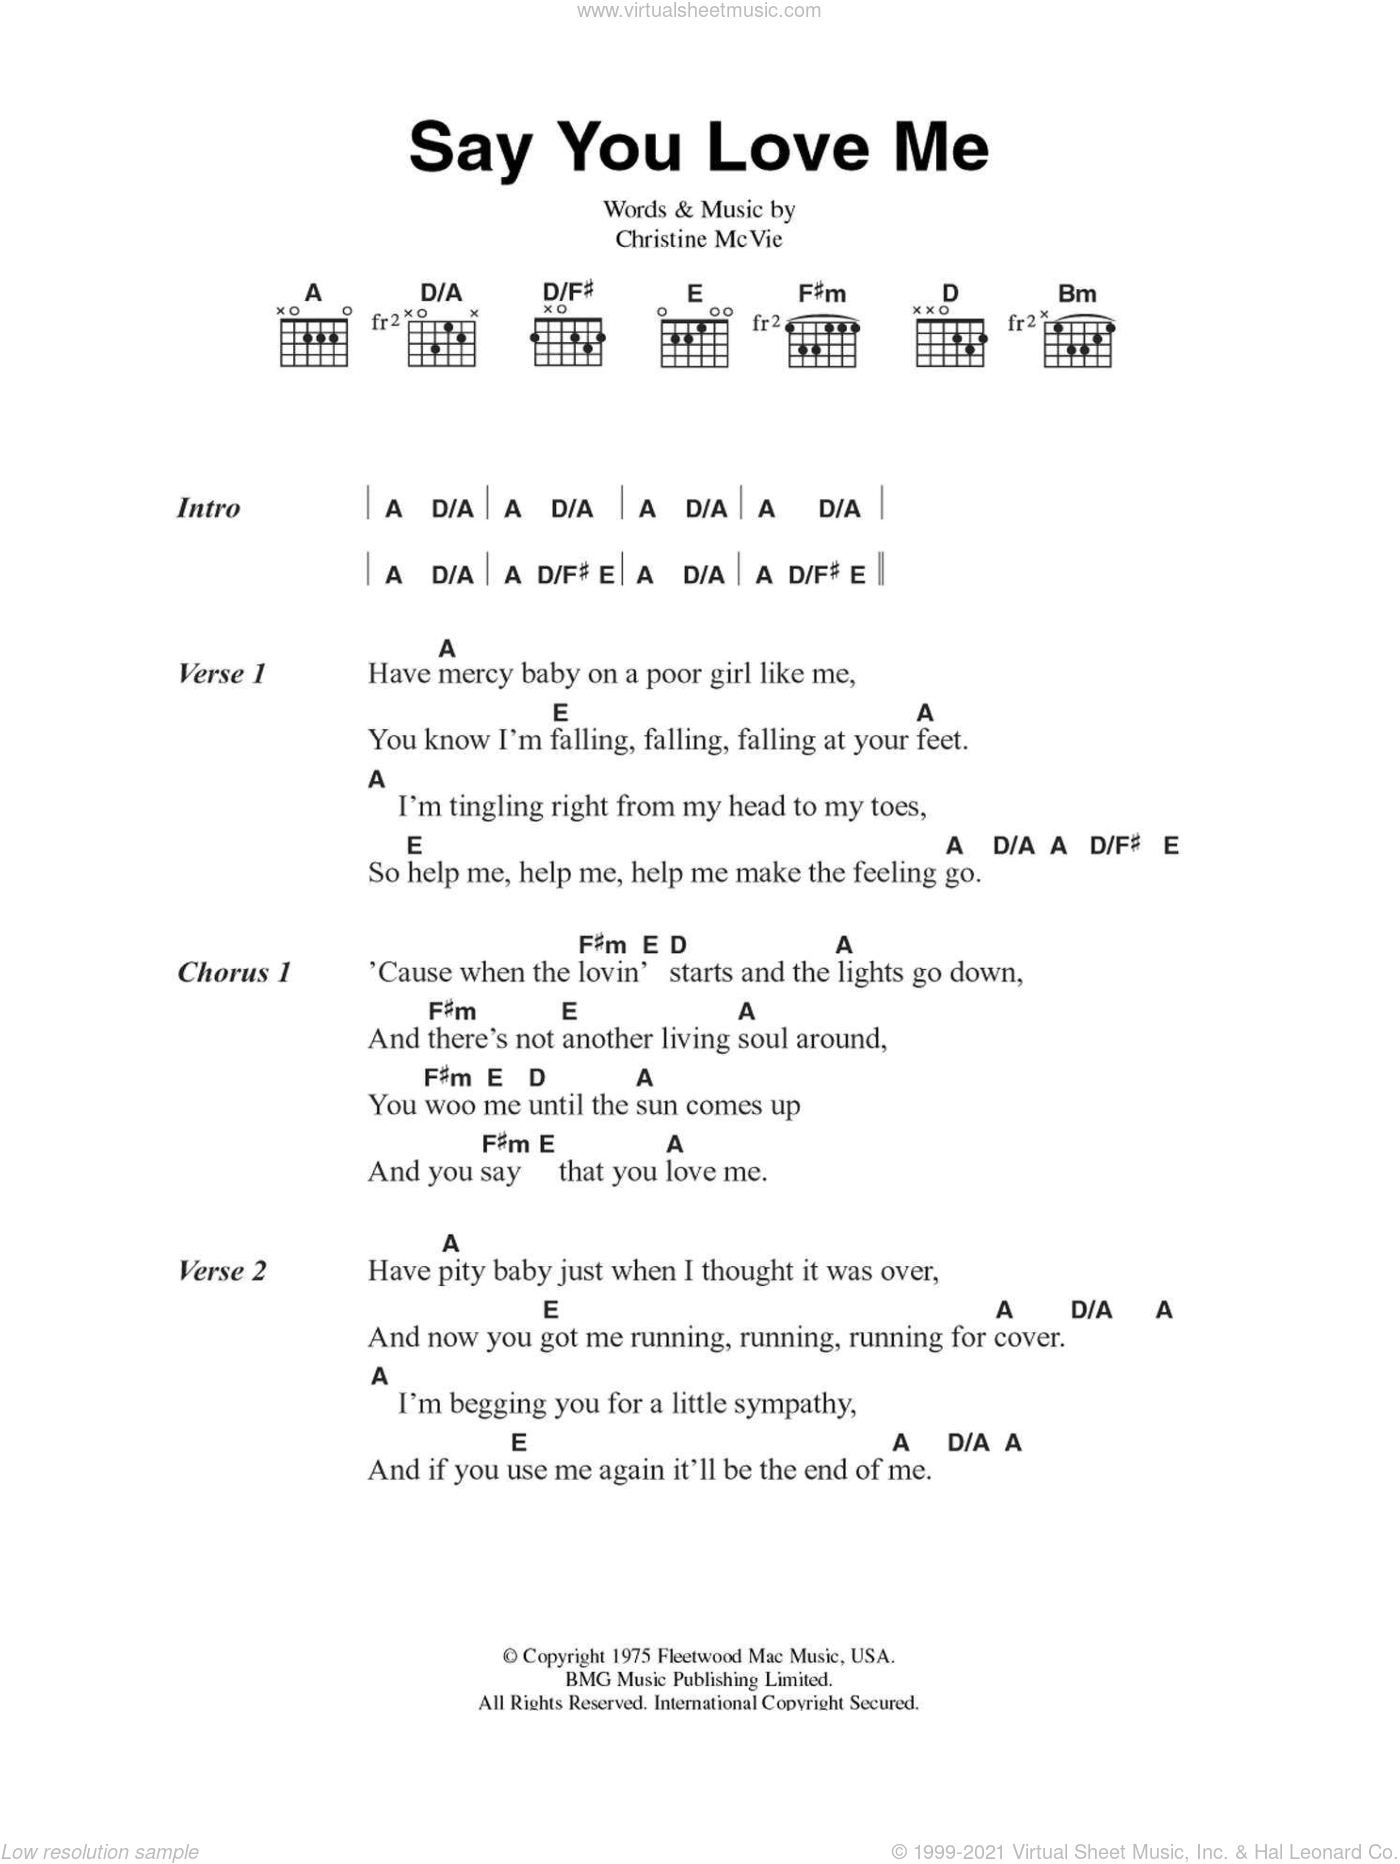 Say You Love Me sheet music for guitar (chords) by Fleetwood Mac and Christine McVie, intermediate skill level